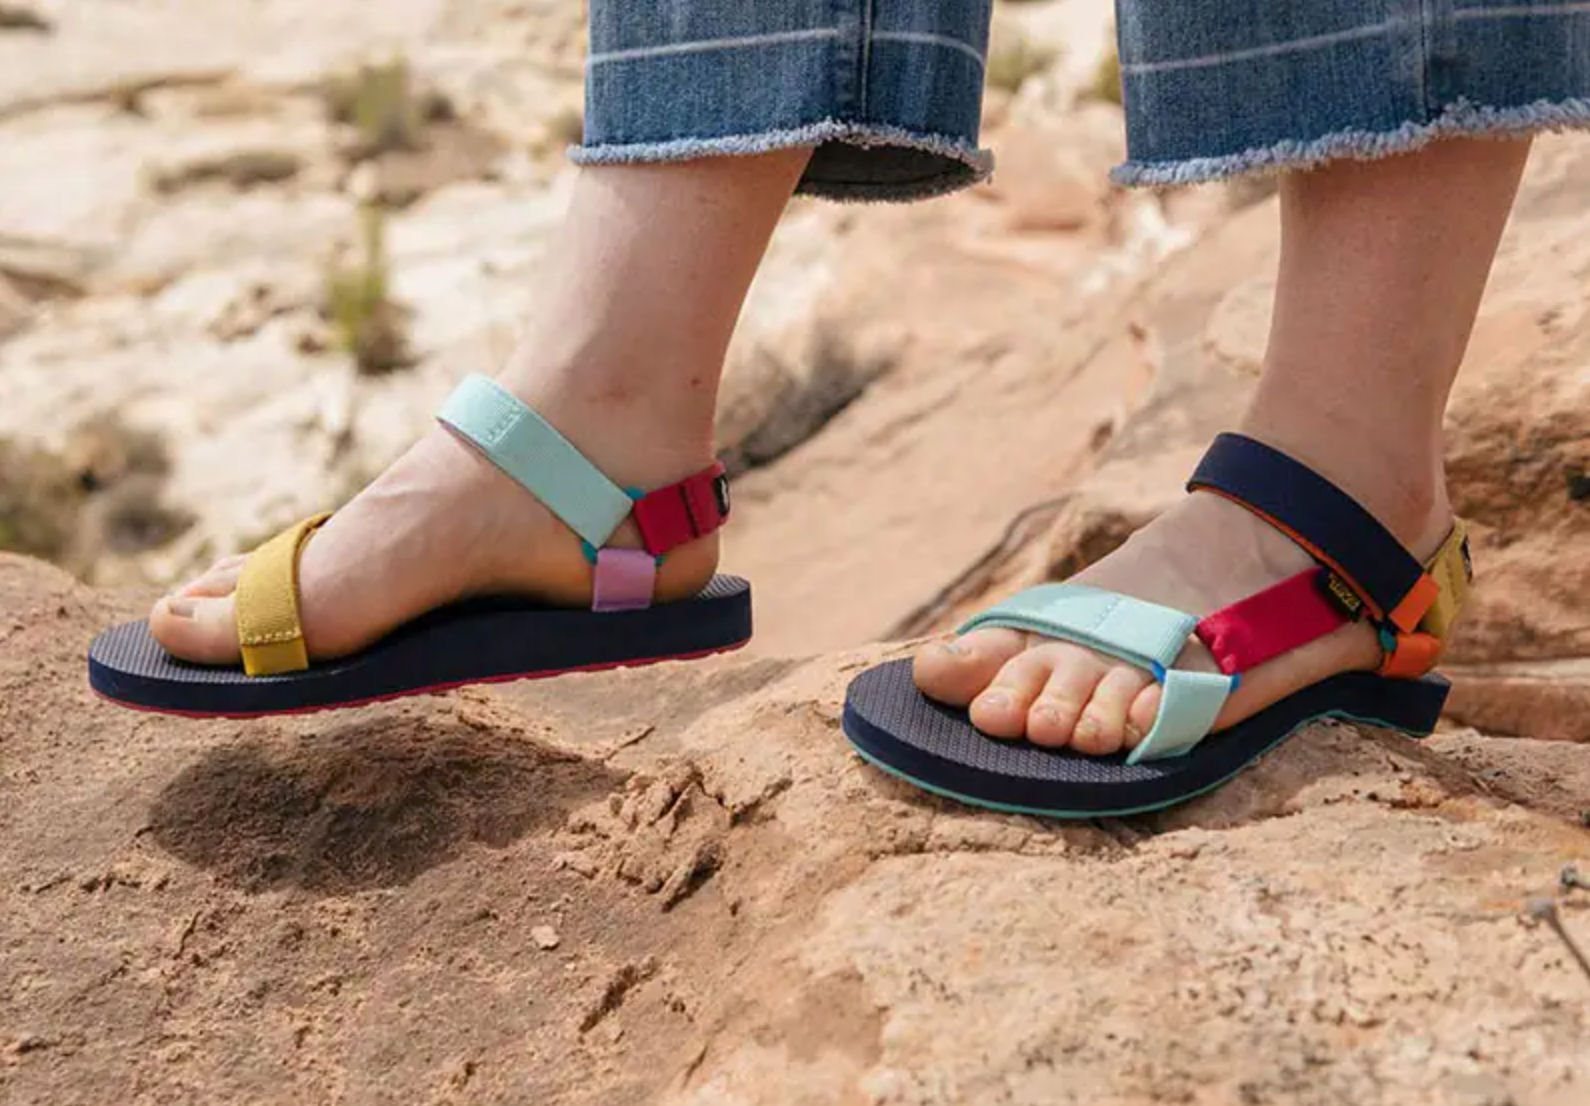 the sandals with multi-colored straps that are different on each shoe